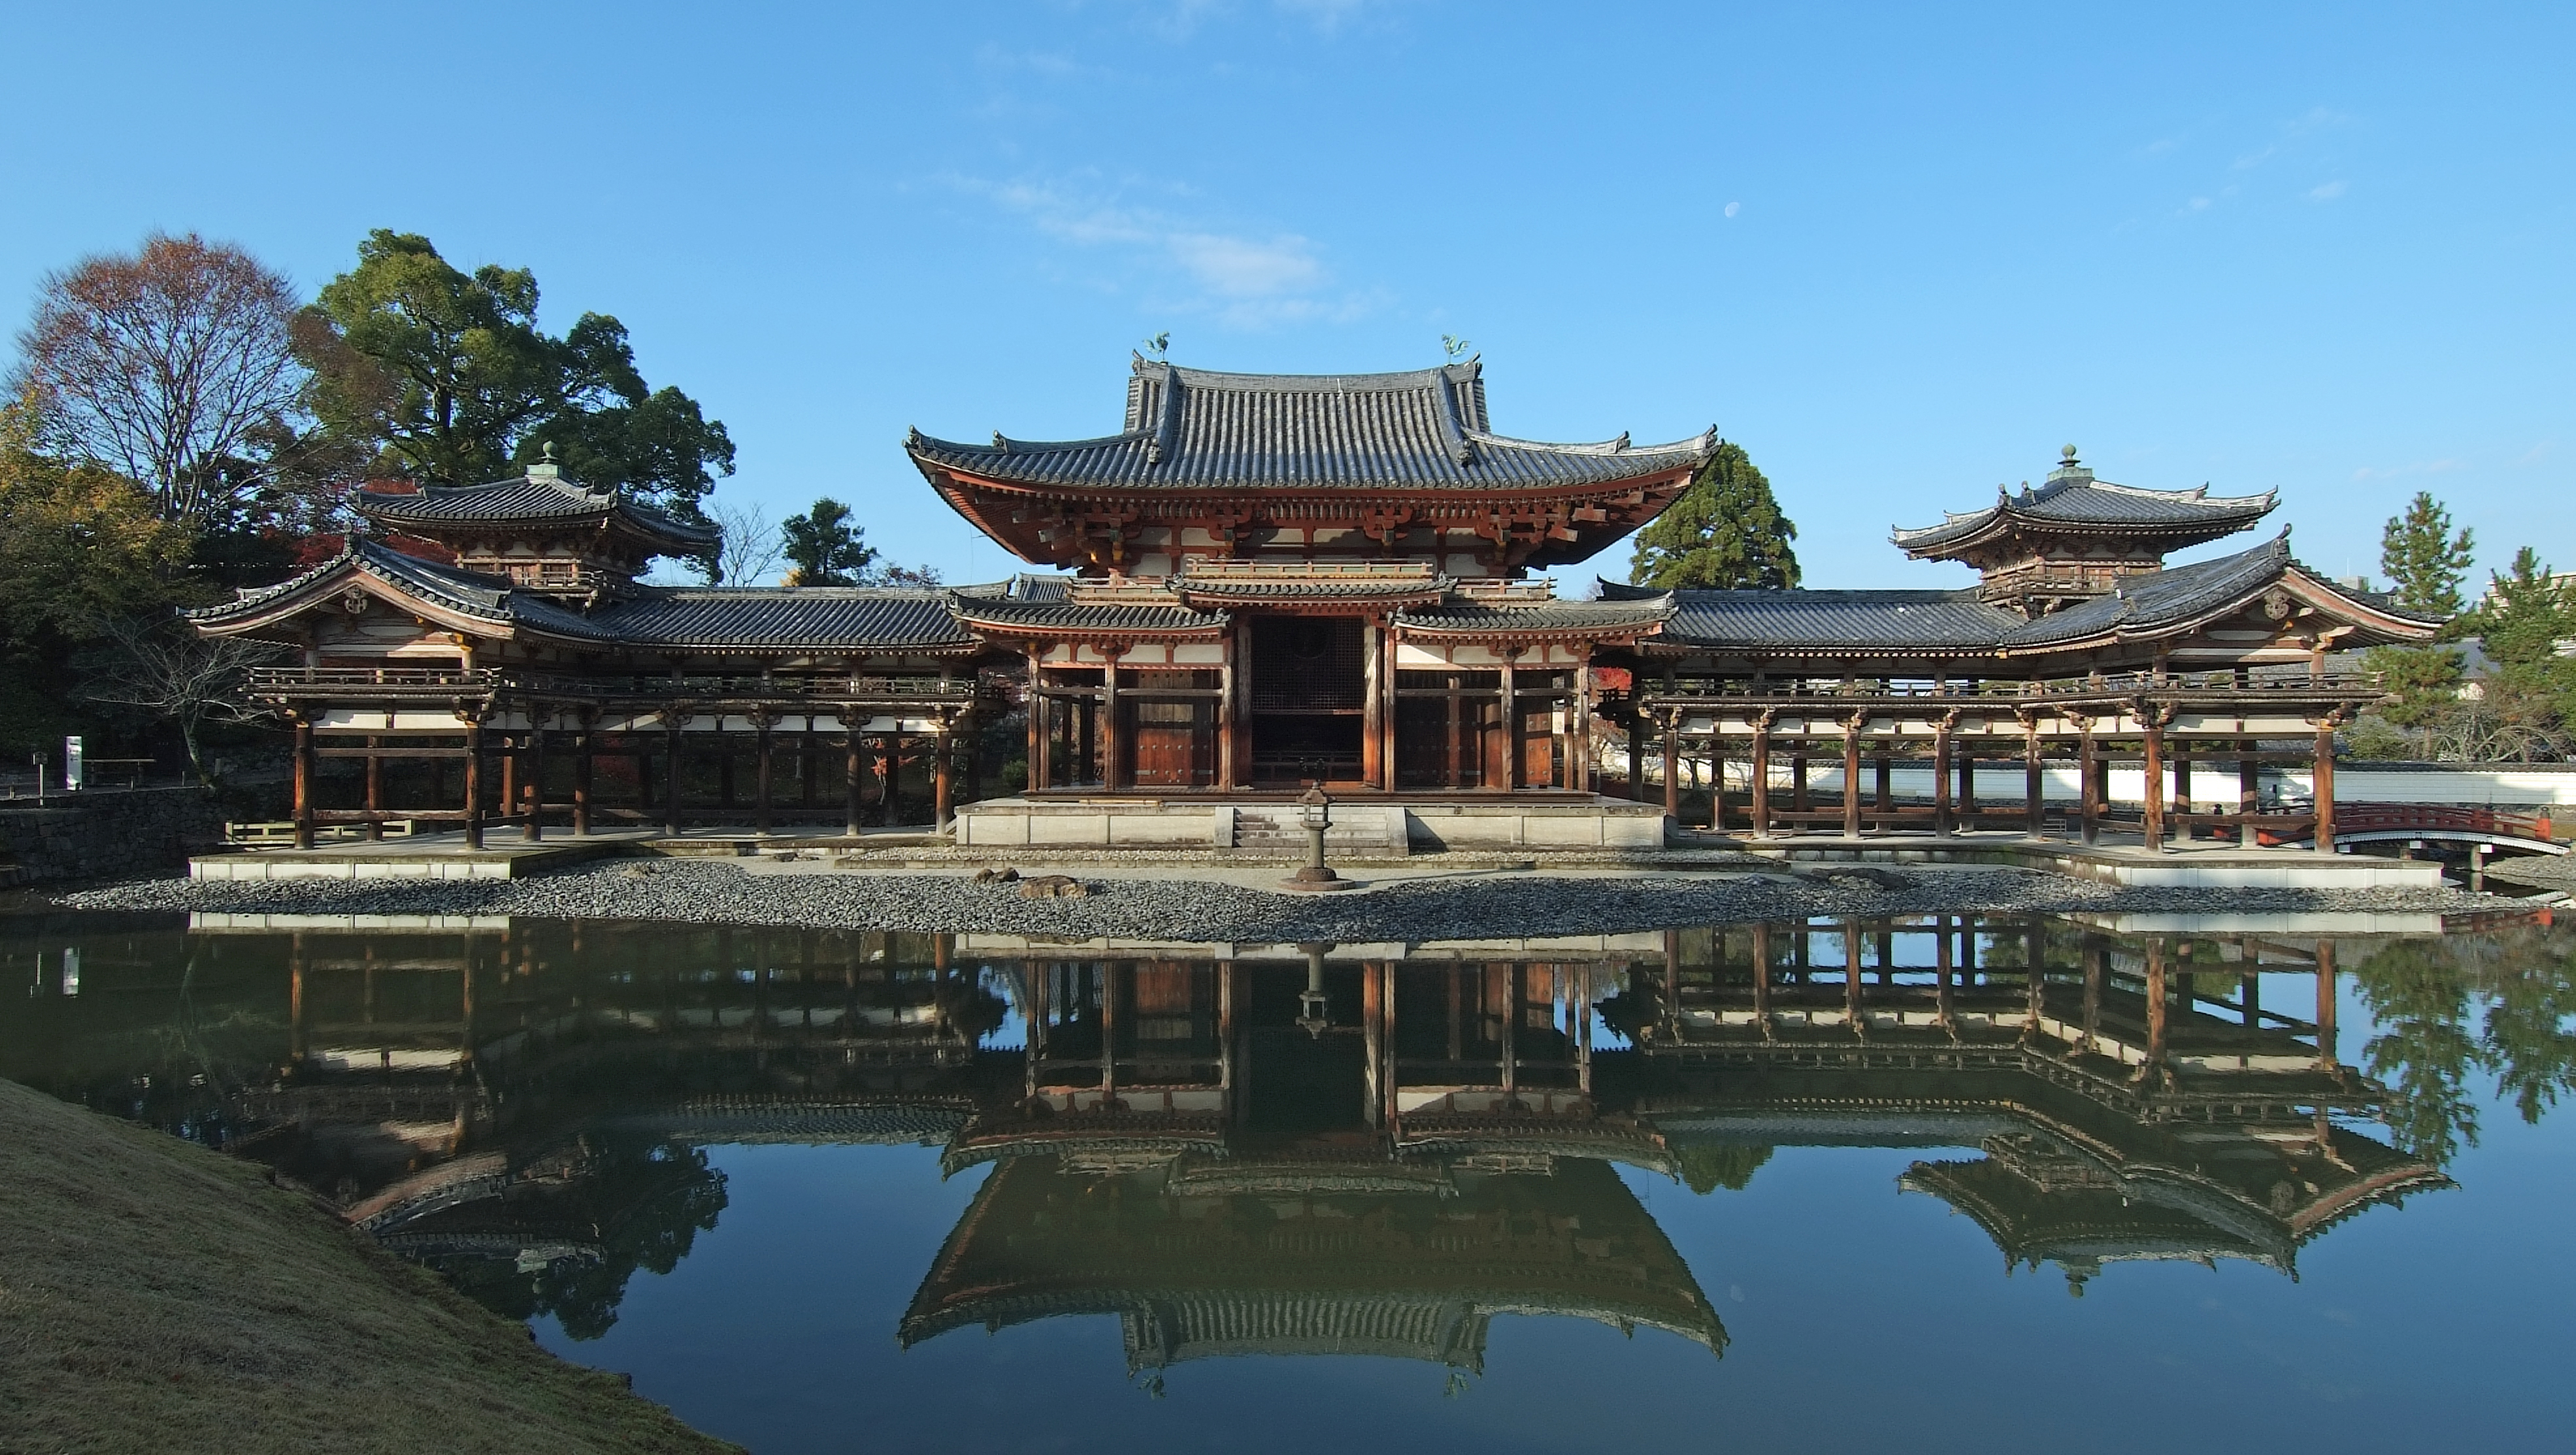 1 Byodo in Buddhist temple Wikimedia Commons taken on a good day 01